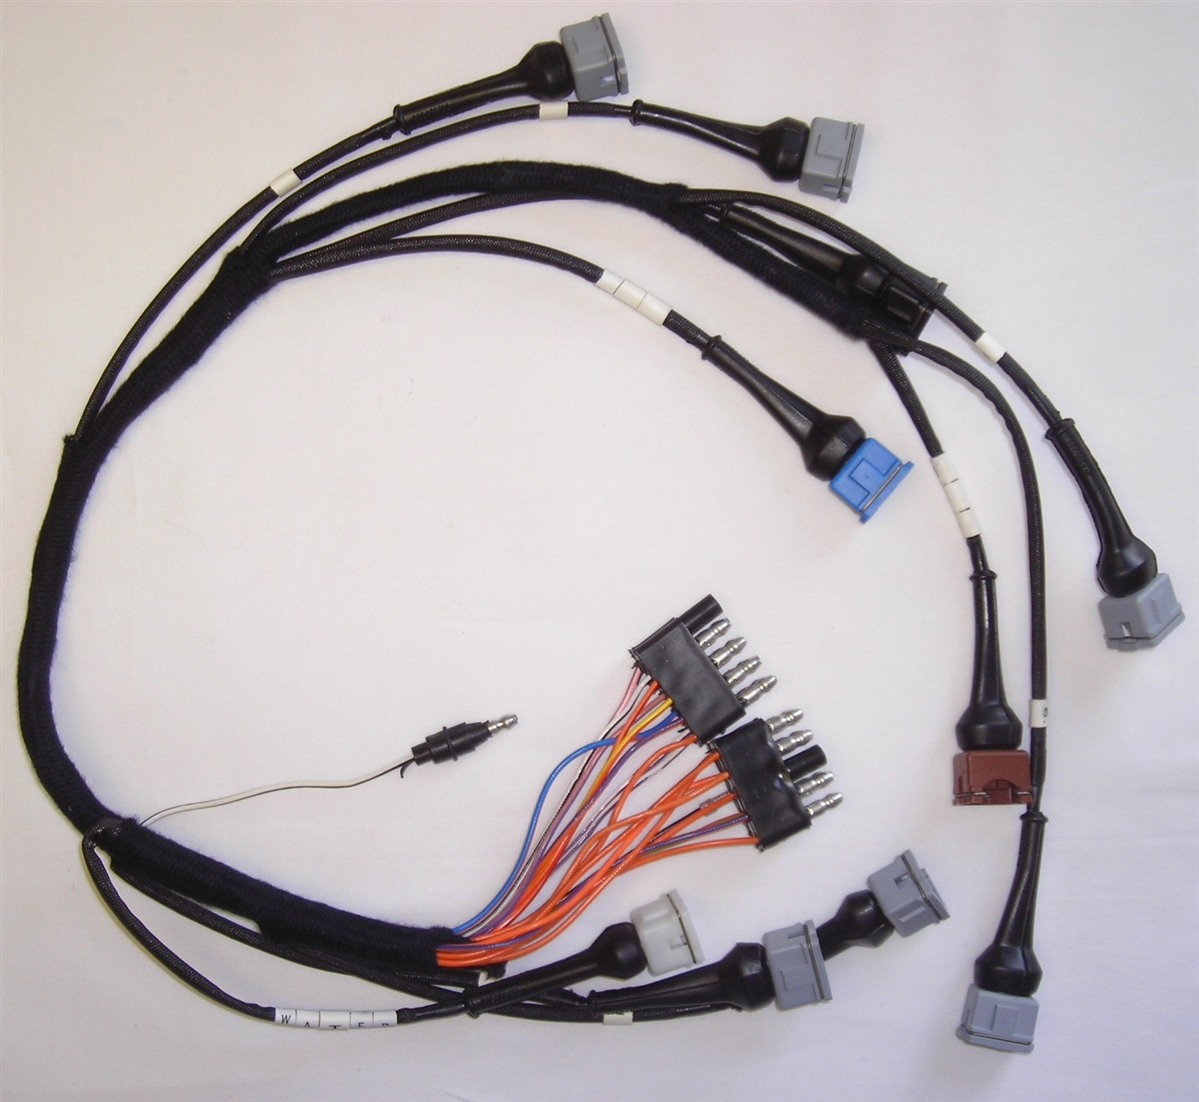 XJ6311 2?1403006000 jaguar series 3 xj6 fuel injection harness wiring harness for fuel injection at readyjetset.co